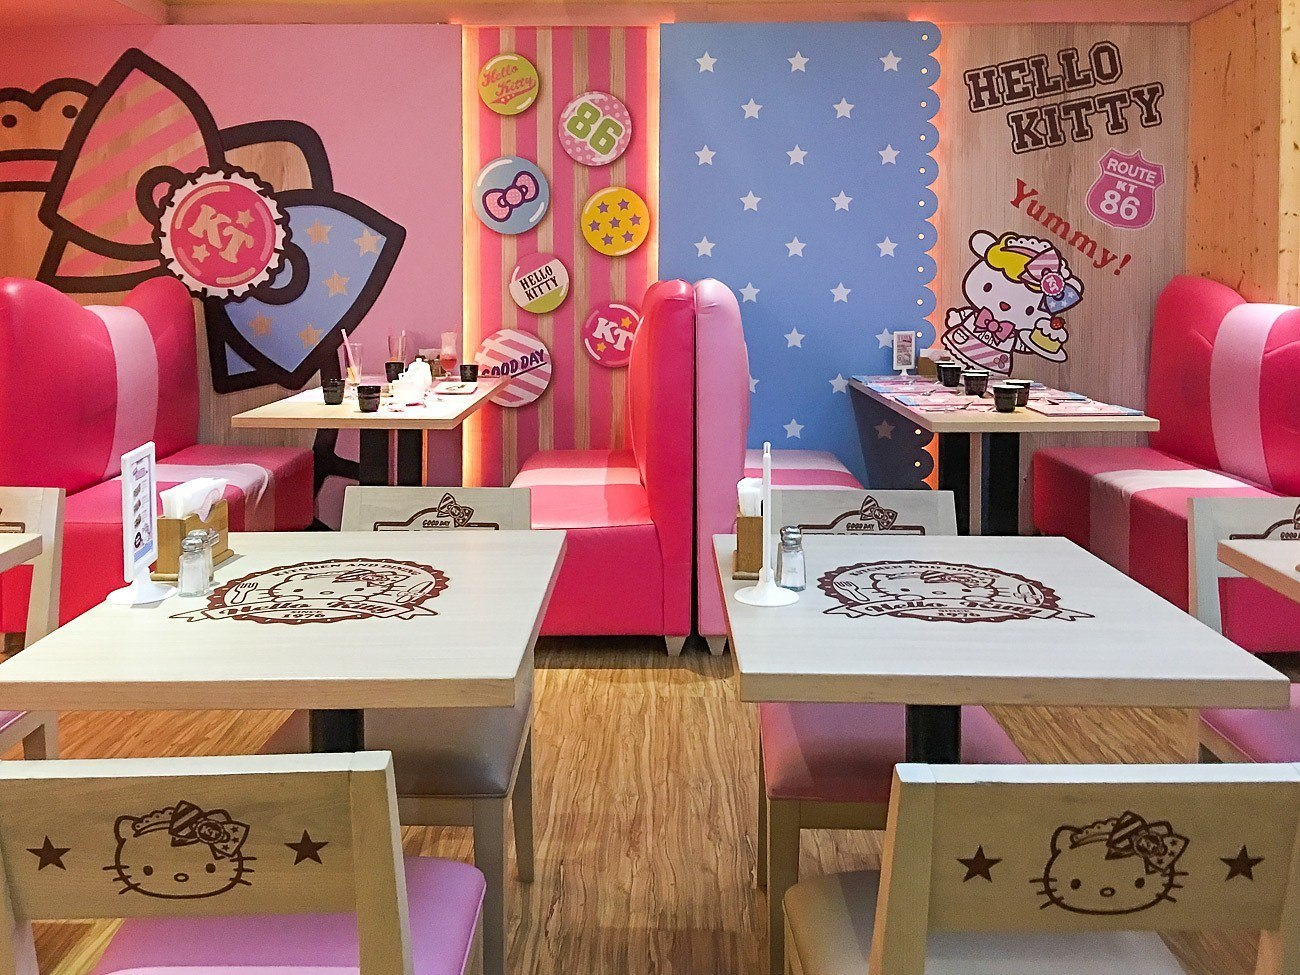 What It's Like to Eat at Taipei's Hello Kitty Cafe - La ...